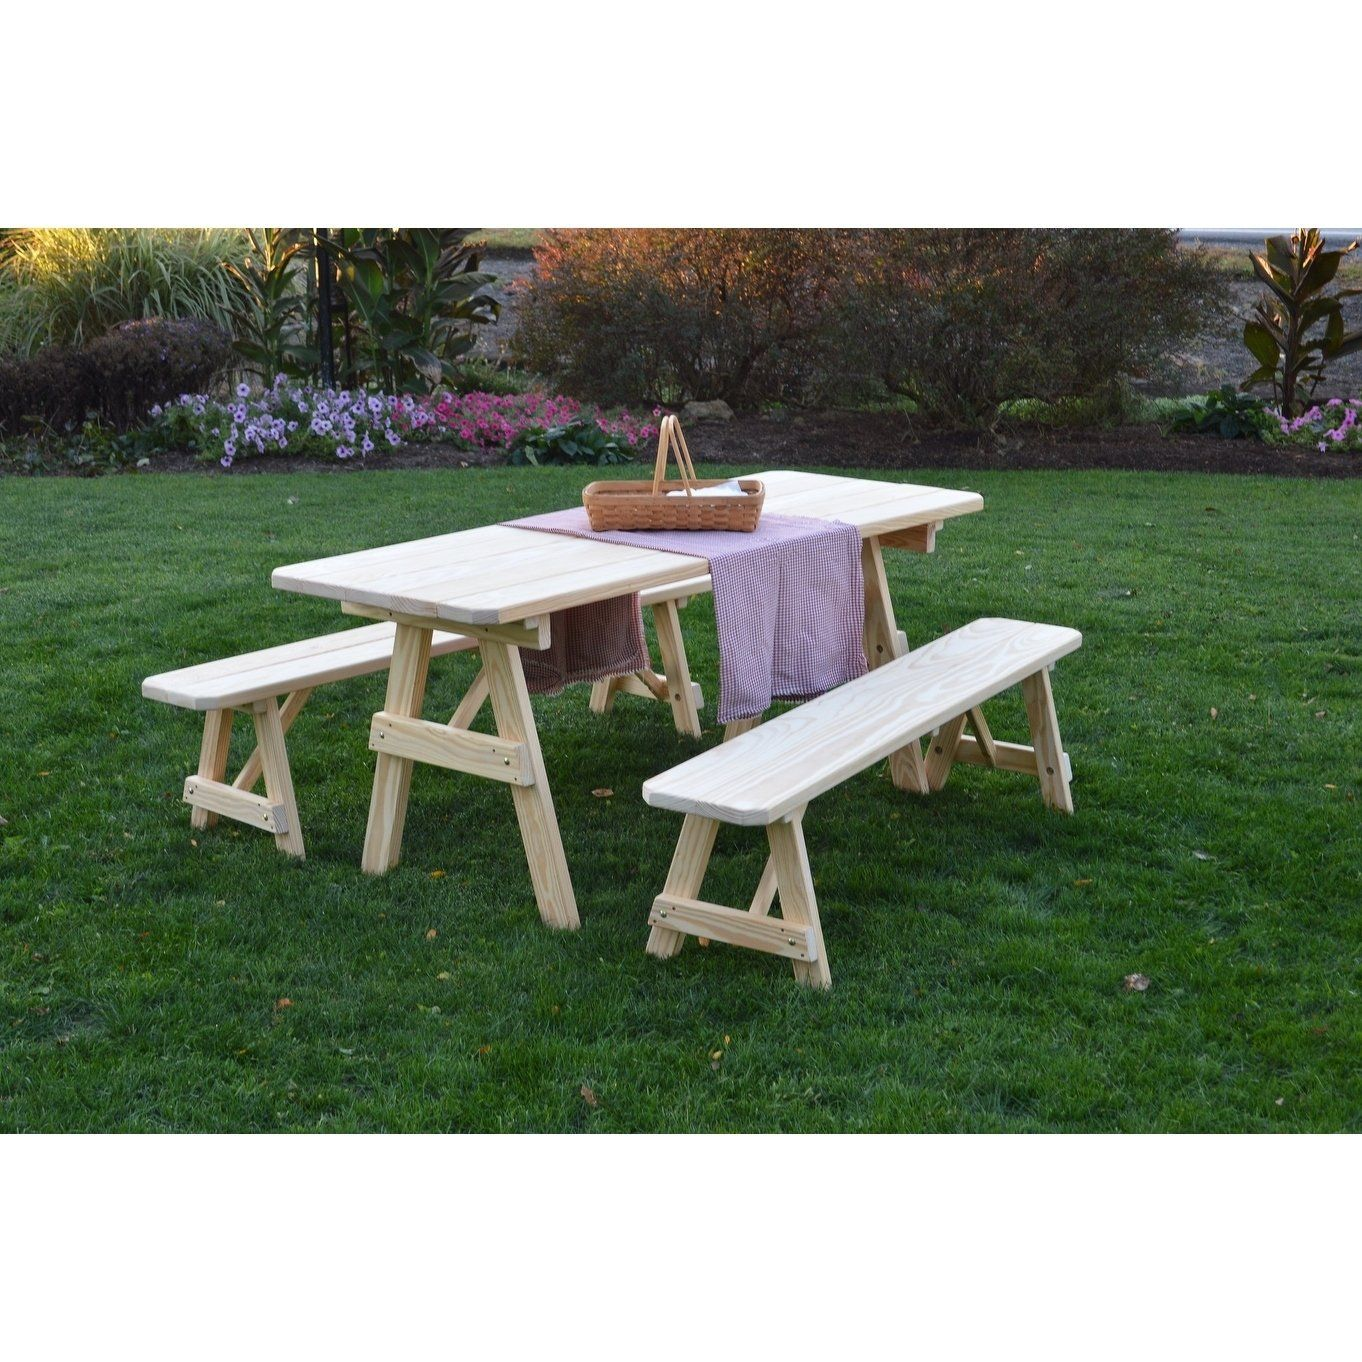 Picnic Table With Detached Benches Unfinished Pressure Treated Pine 8 Feet Natural Picnic Table Solid Wood Table Tops Furniture